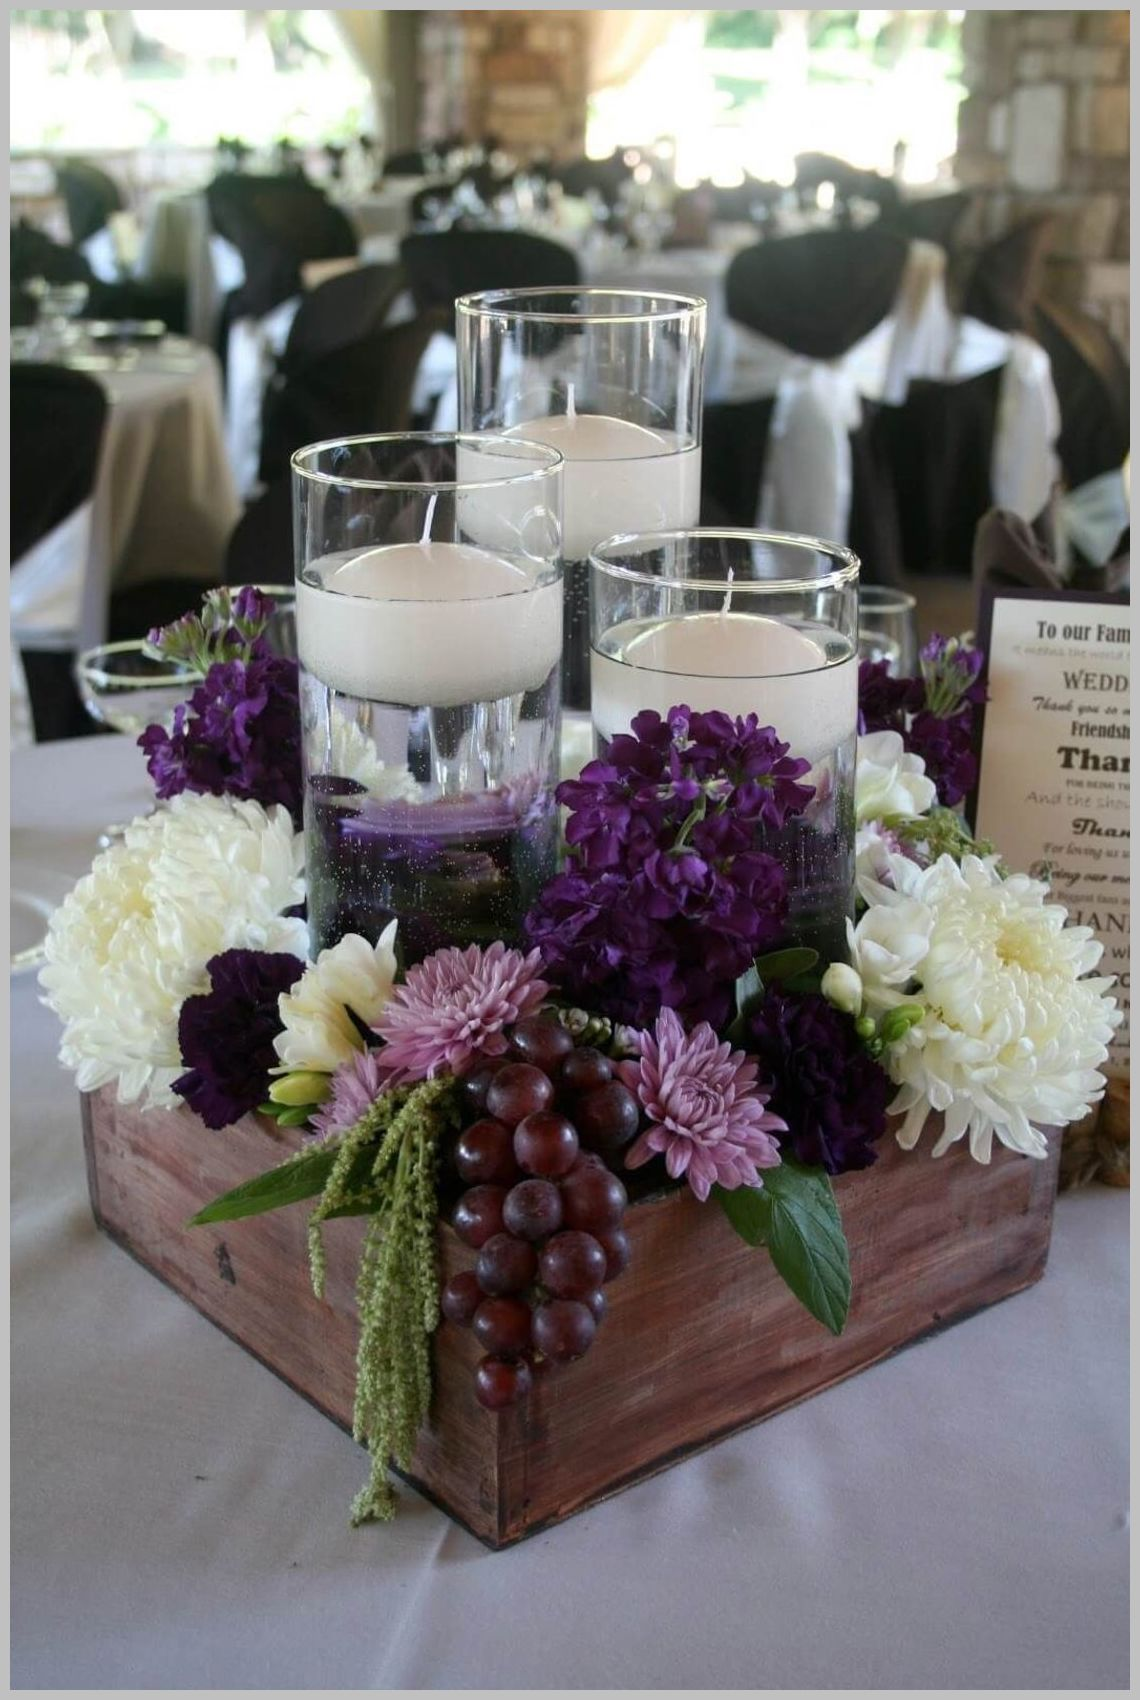 Wedding centerpieces how to make cheap wedding centerpieces for wedding centerpieces how to make cheap wedding centerpieces for tables check out this great izmirmasajfo